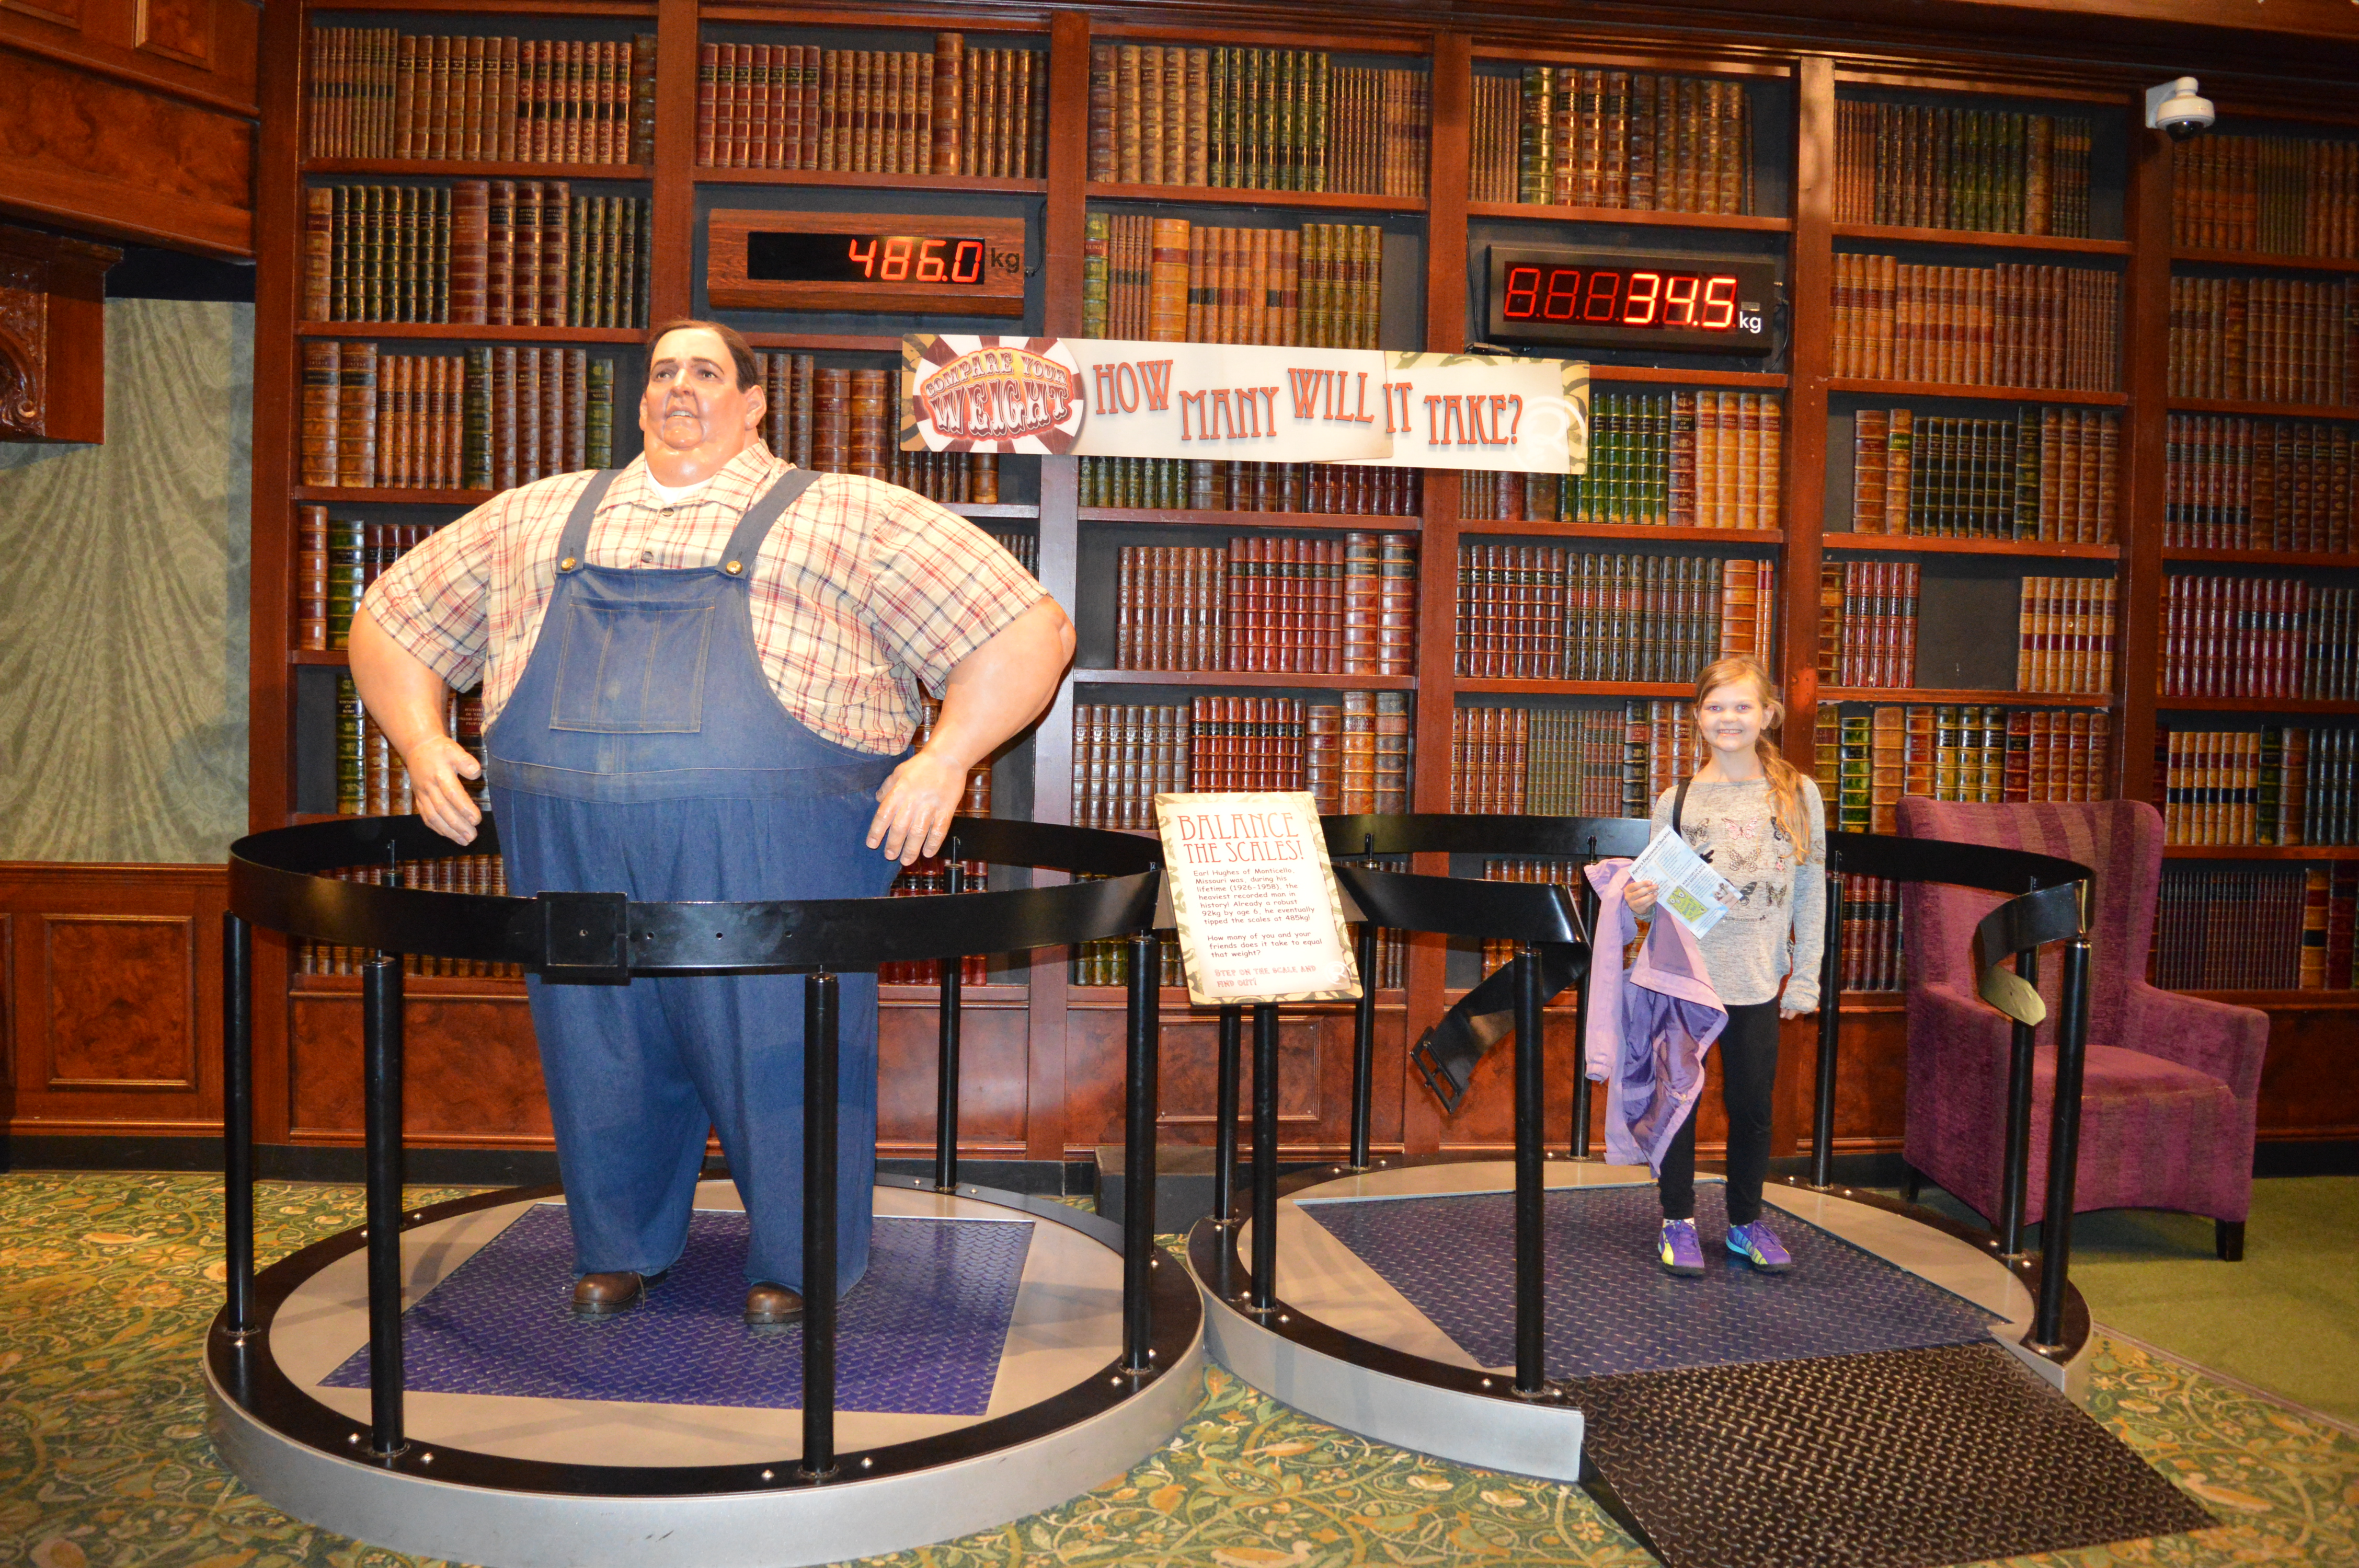 Eowyn weighing herself against the worlds heaviest man